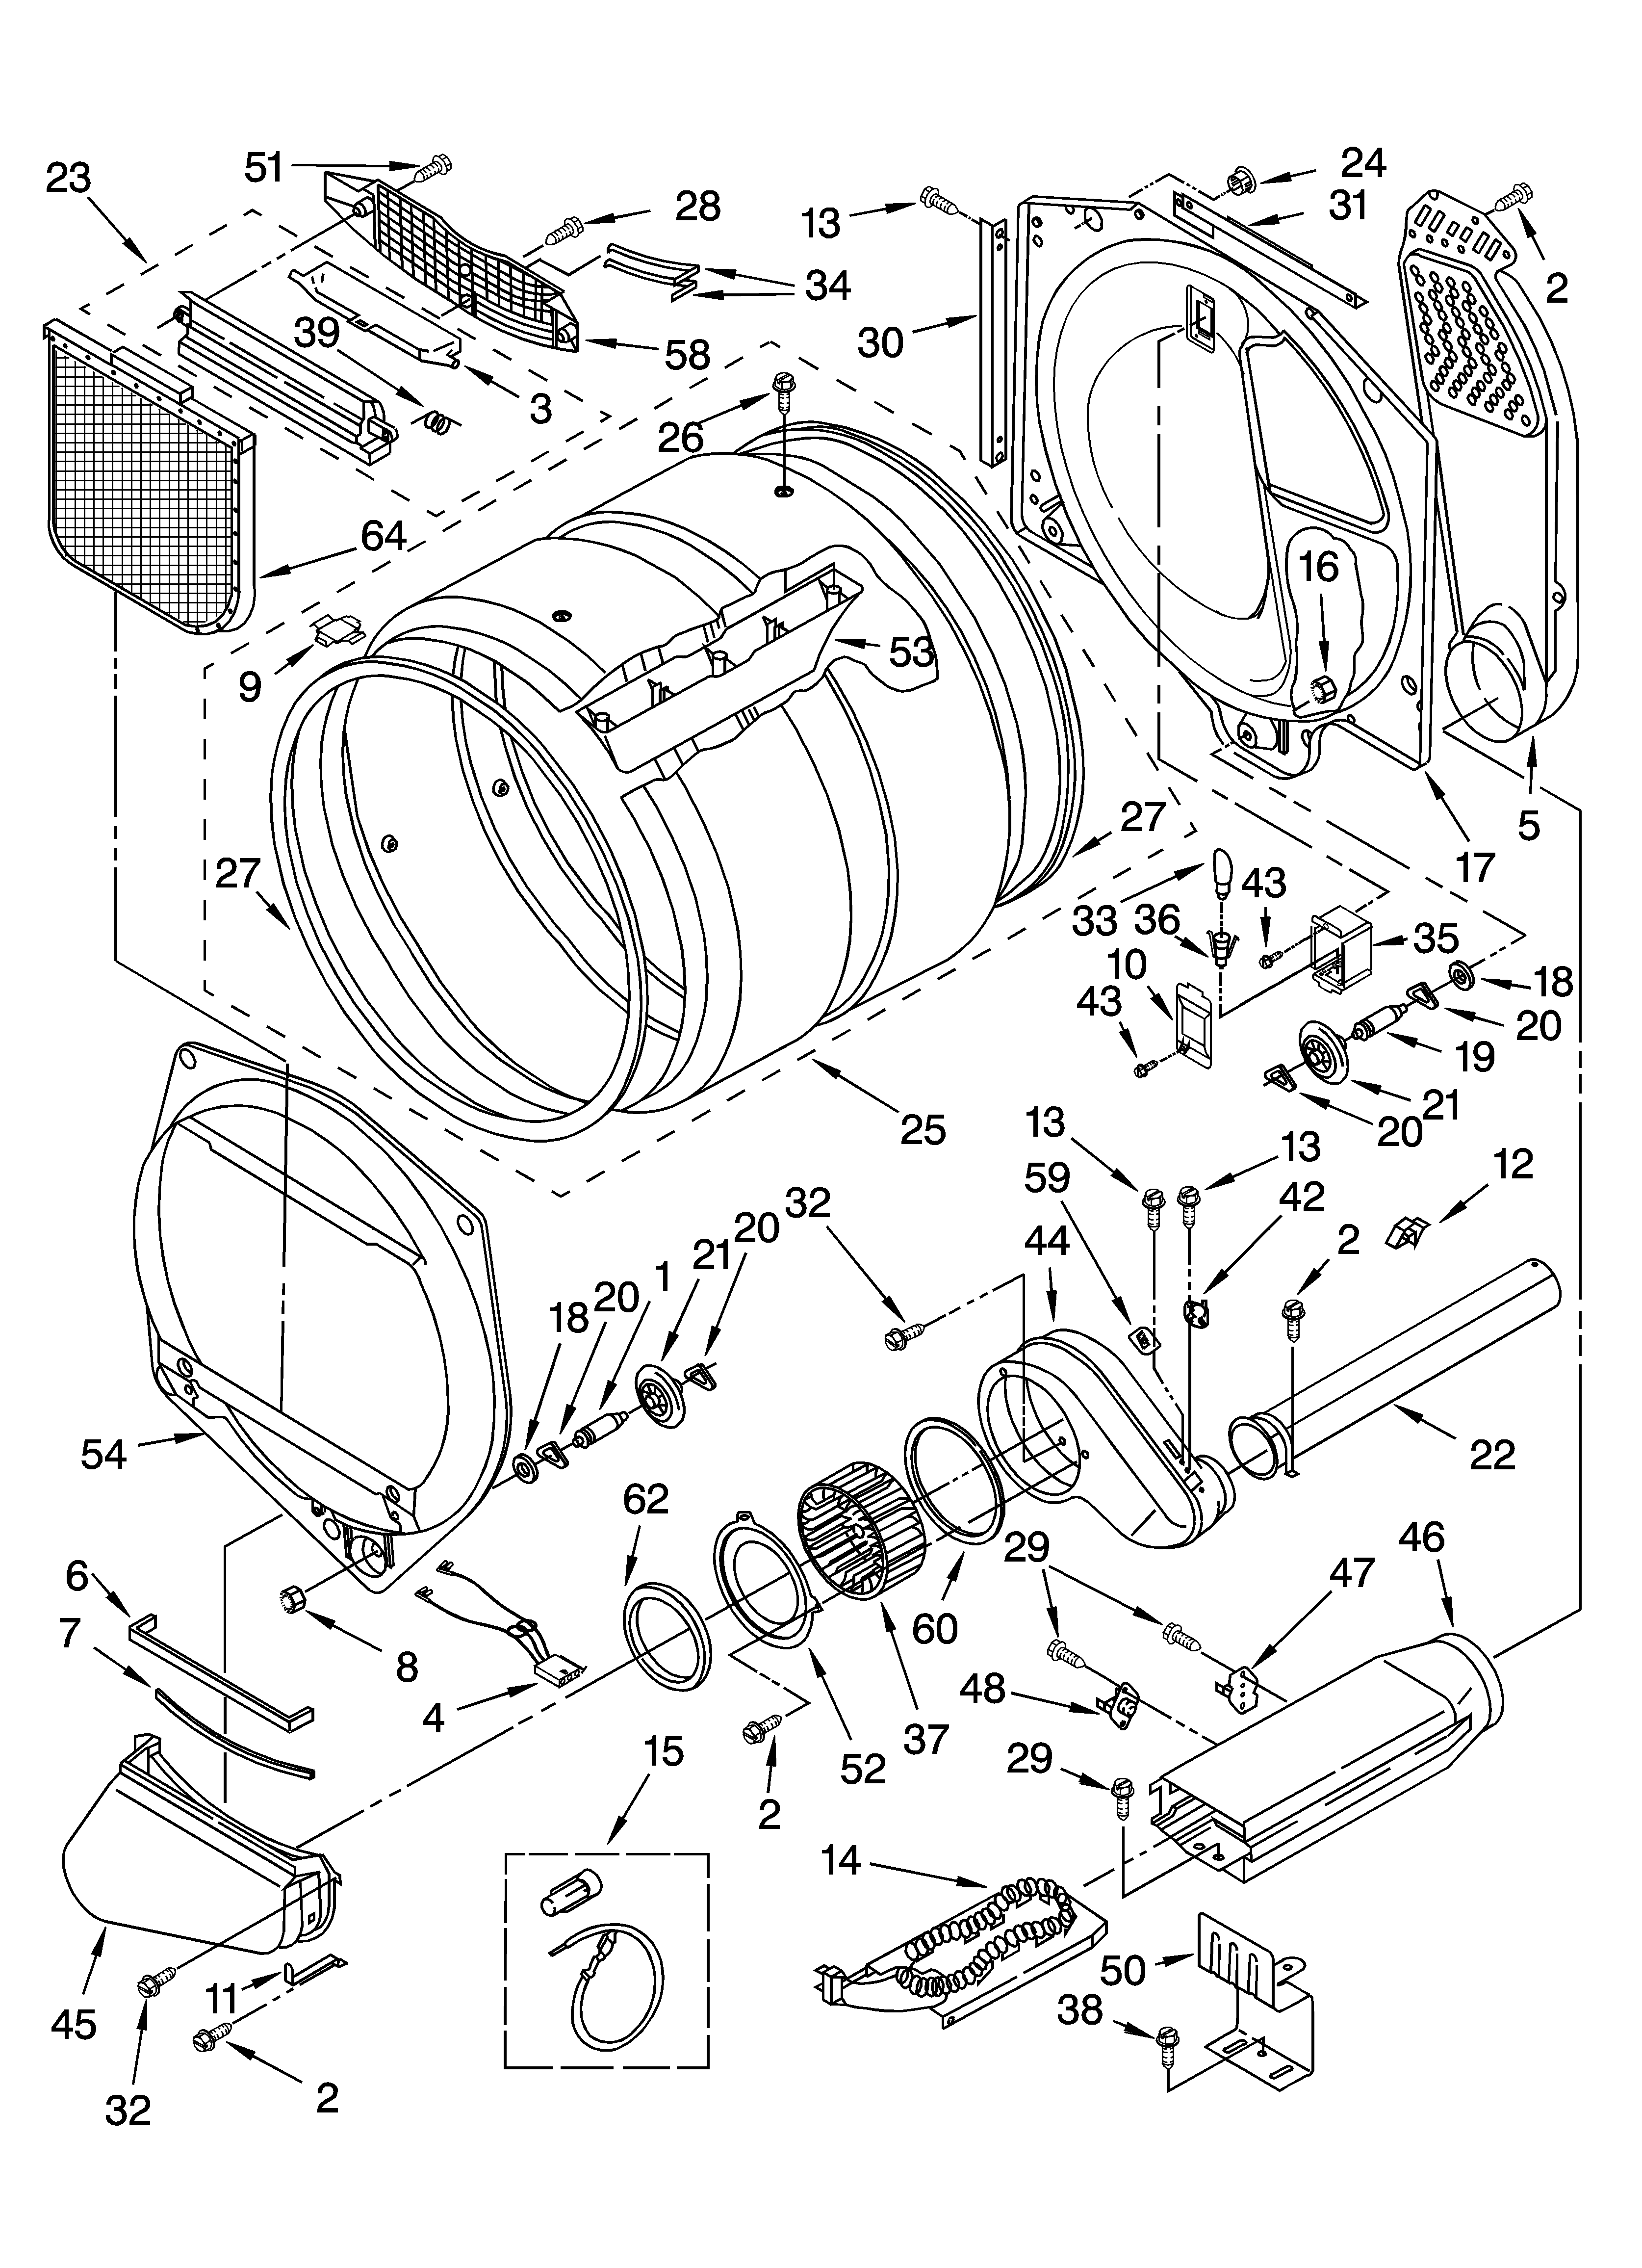 He3t Schematic - Wiring Diagrams Folder on